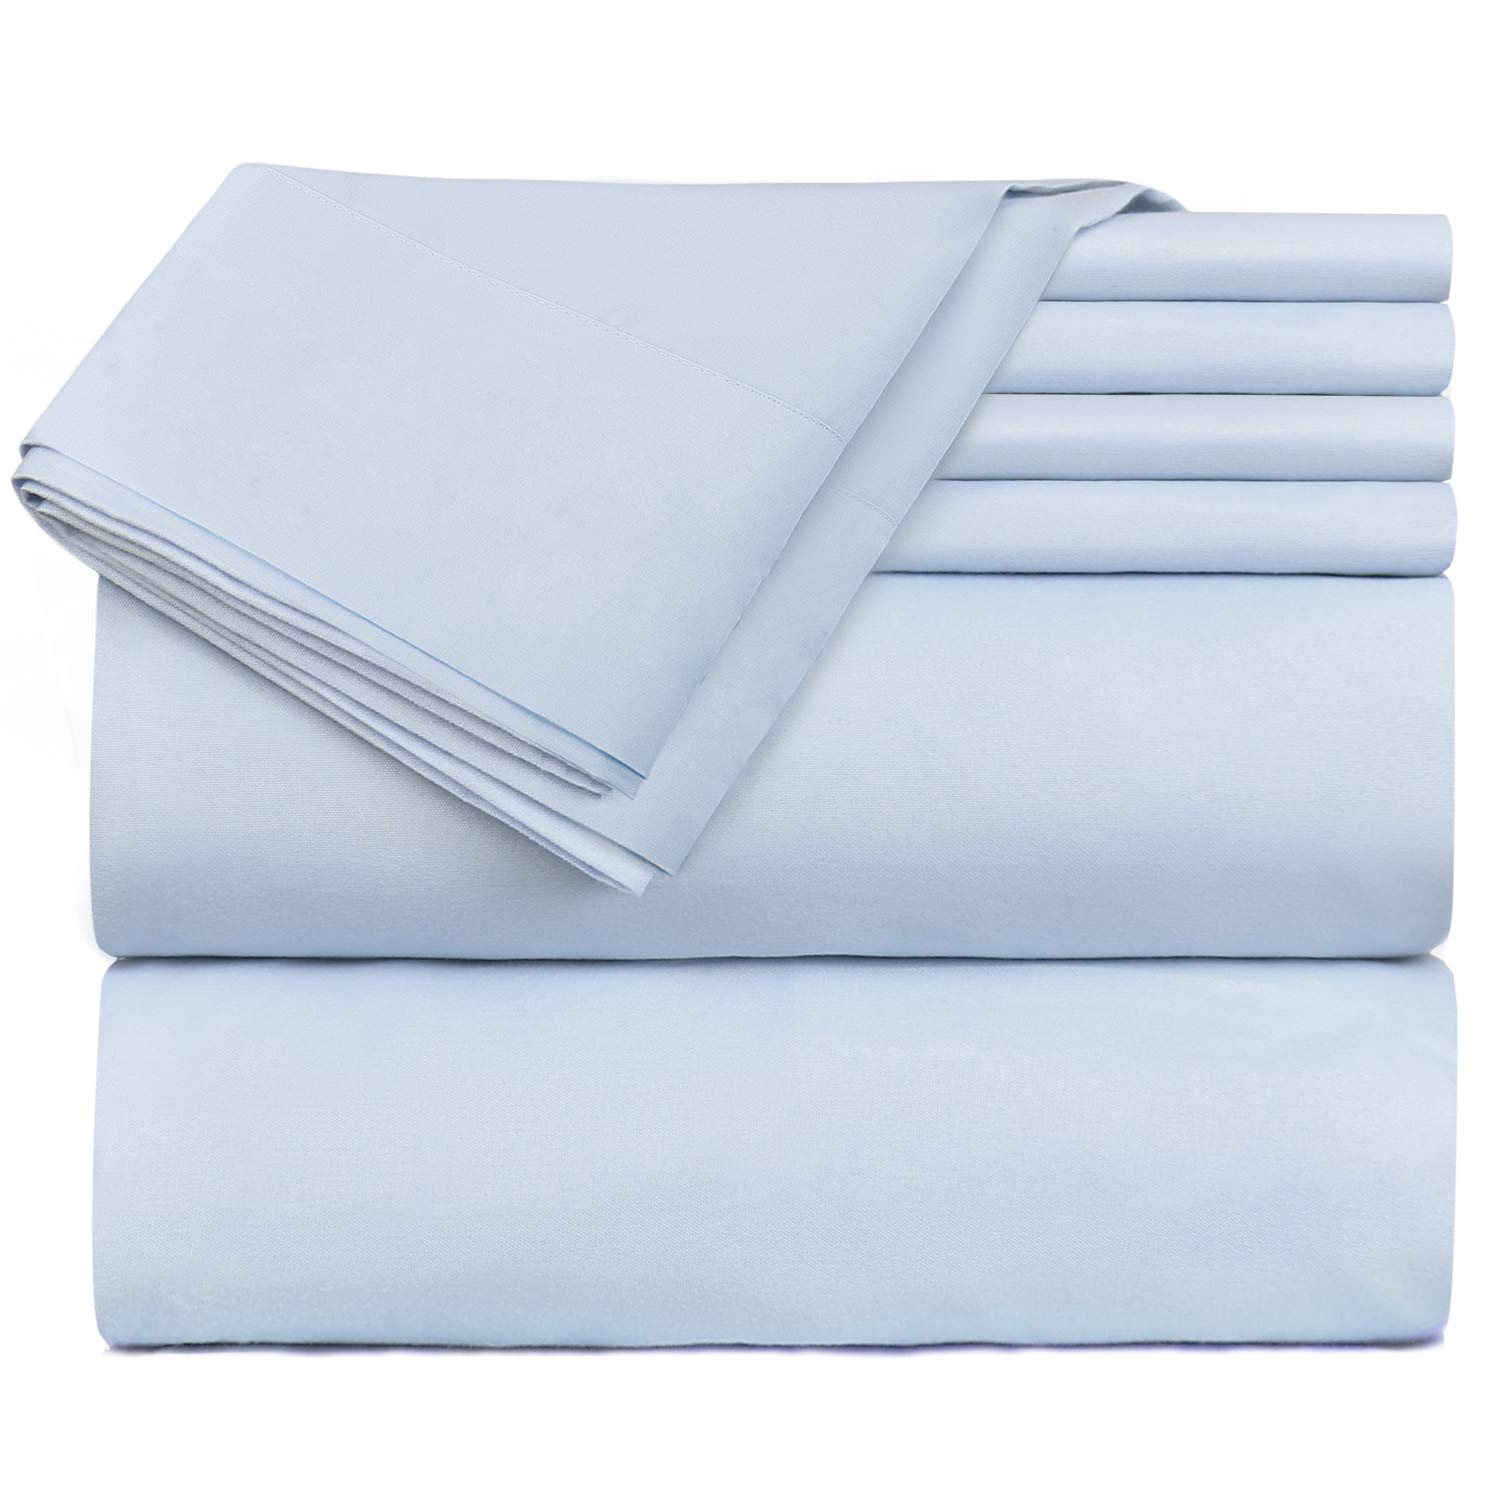 Hearth & Harbor 6 Piece Bed Sheet Set Extra Deep Pocket, Fits Mattress from 18-24 inces Depth, King, Ice Blue